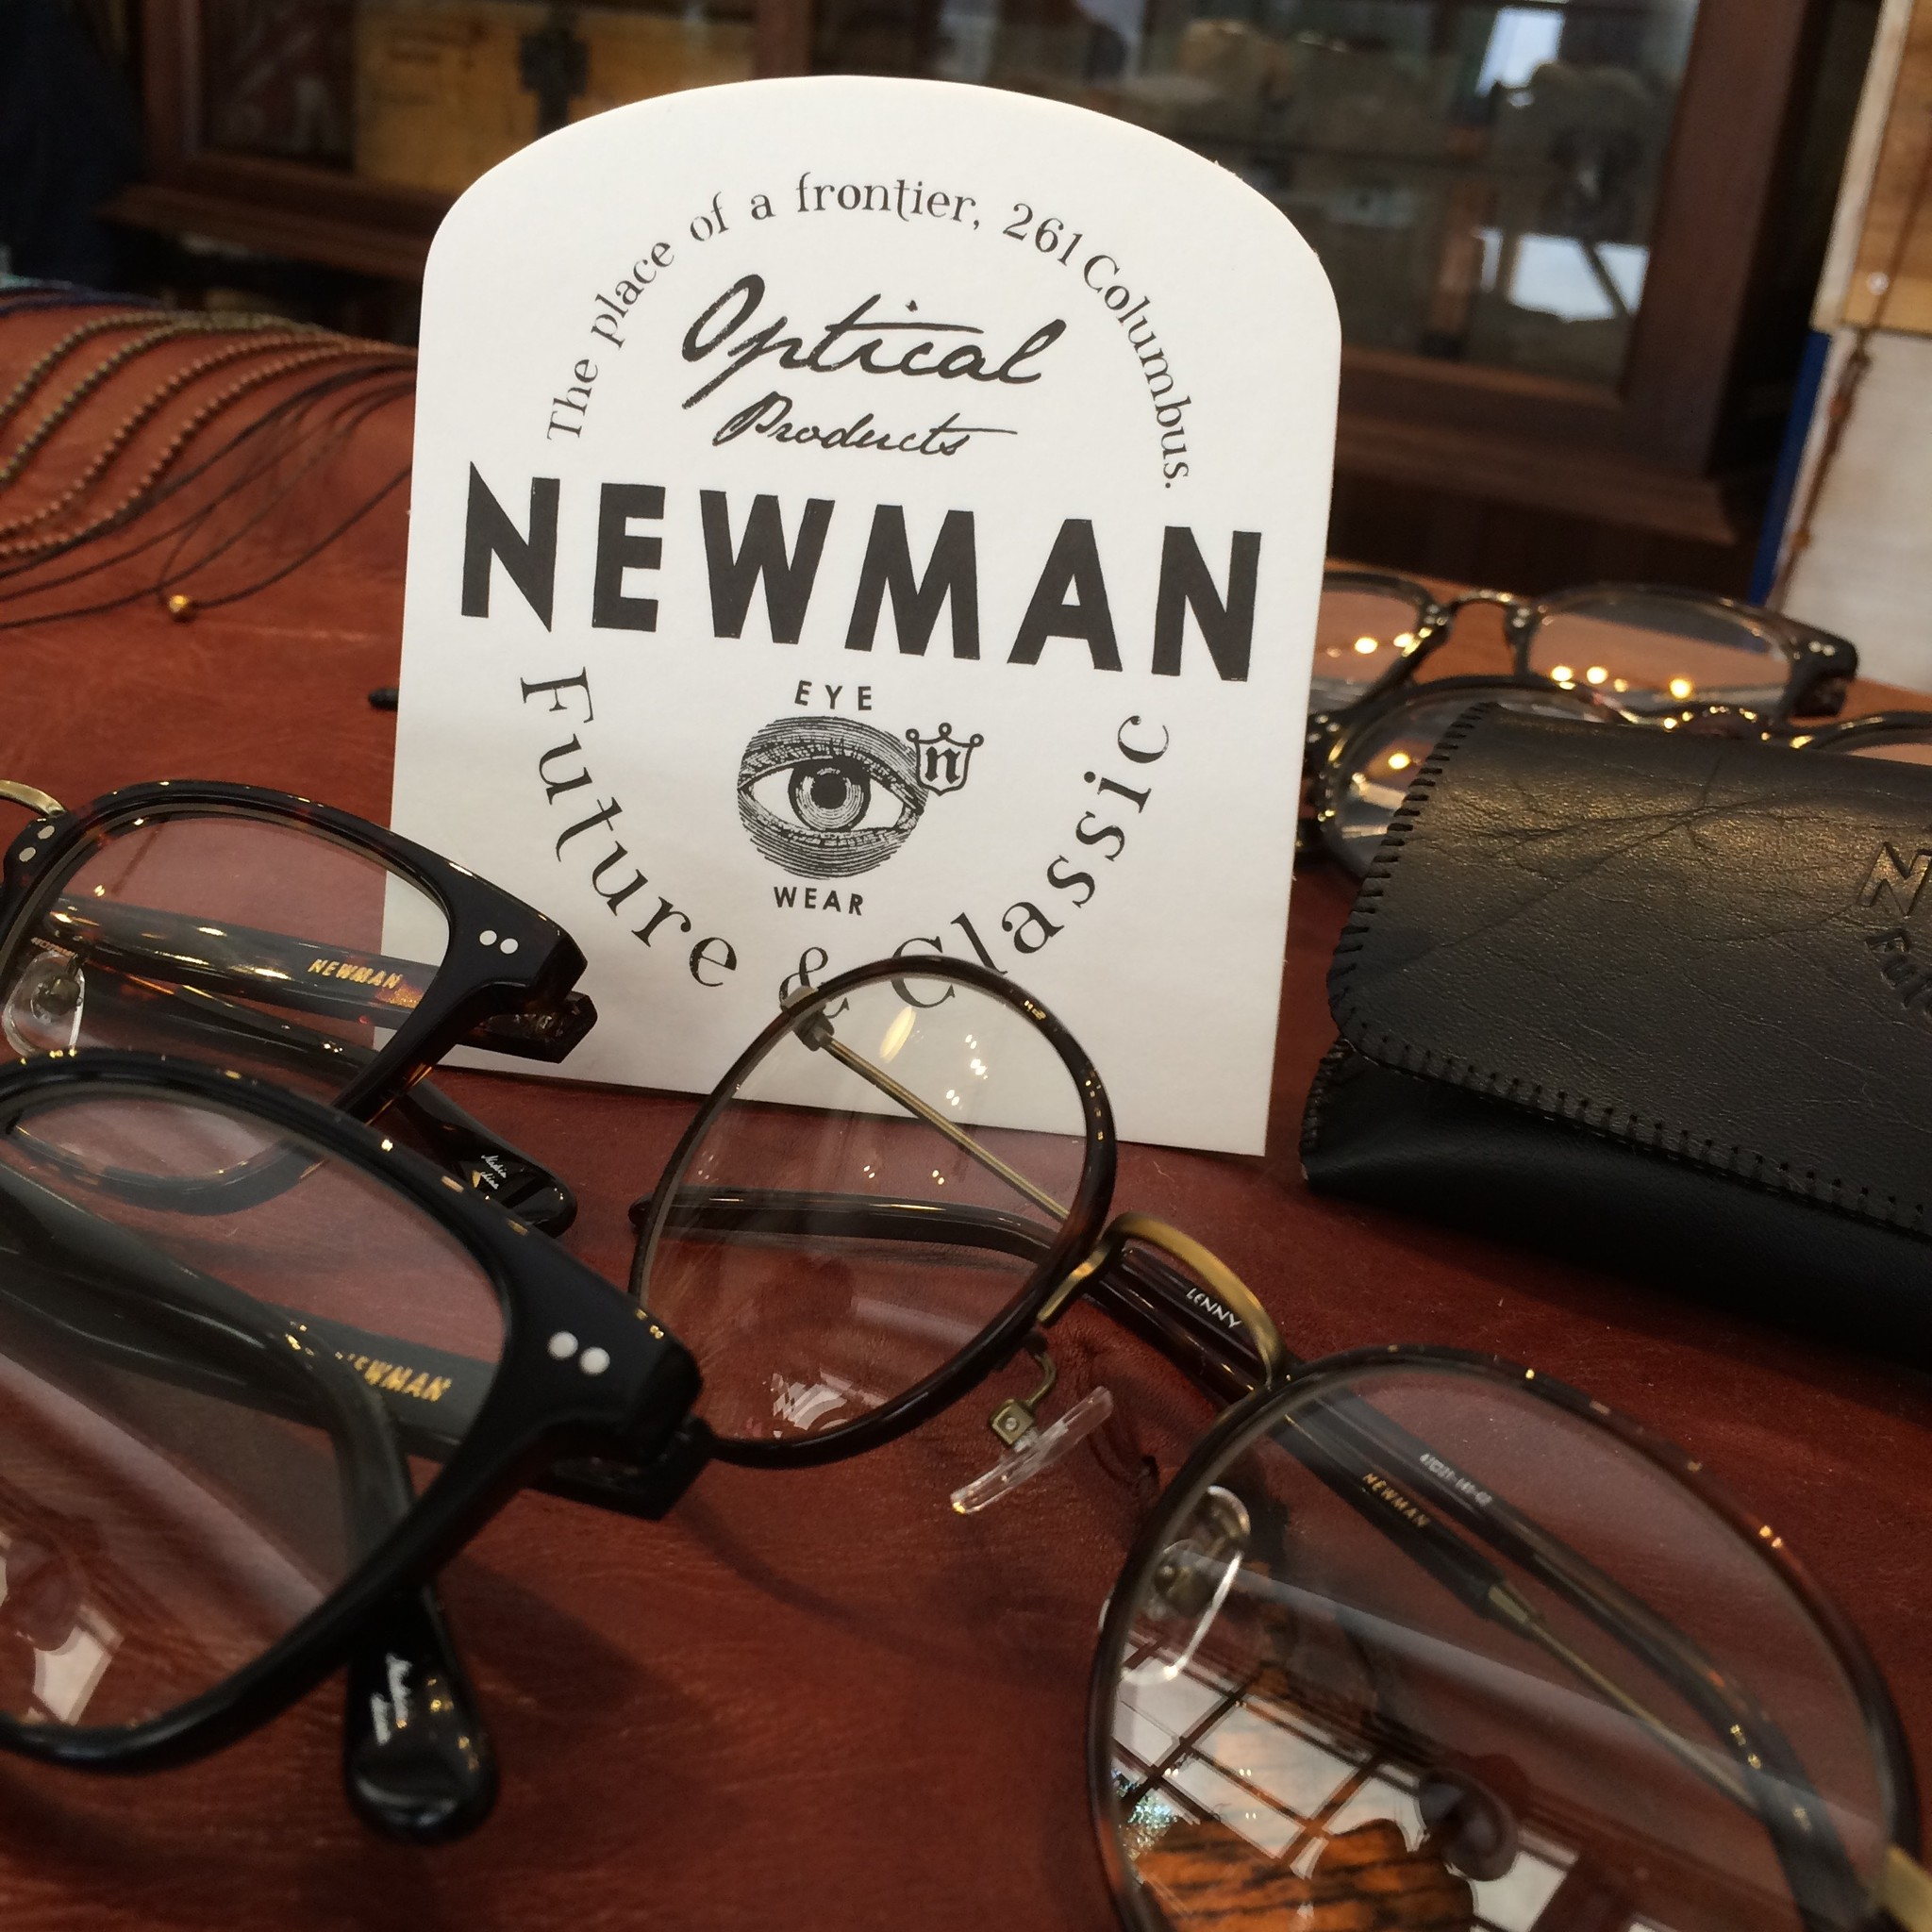 NEWMAN(ニューマン) Glasses Collection